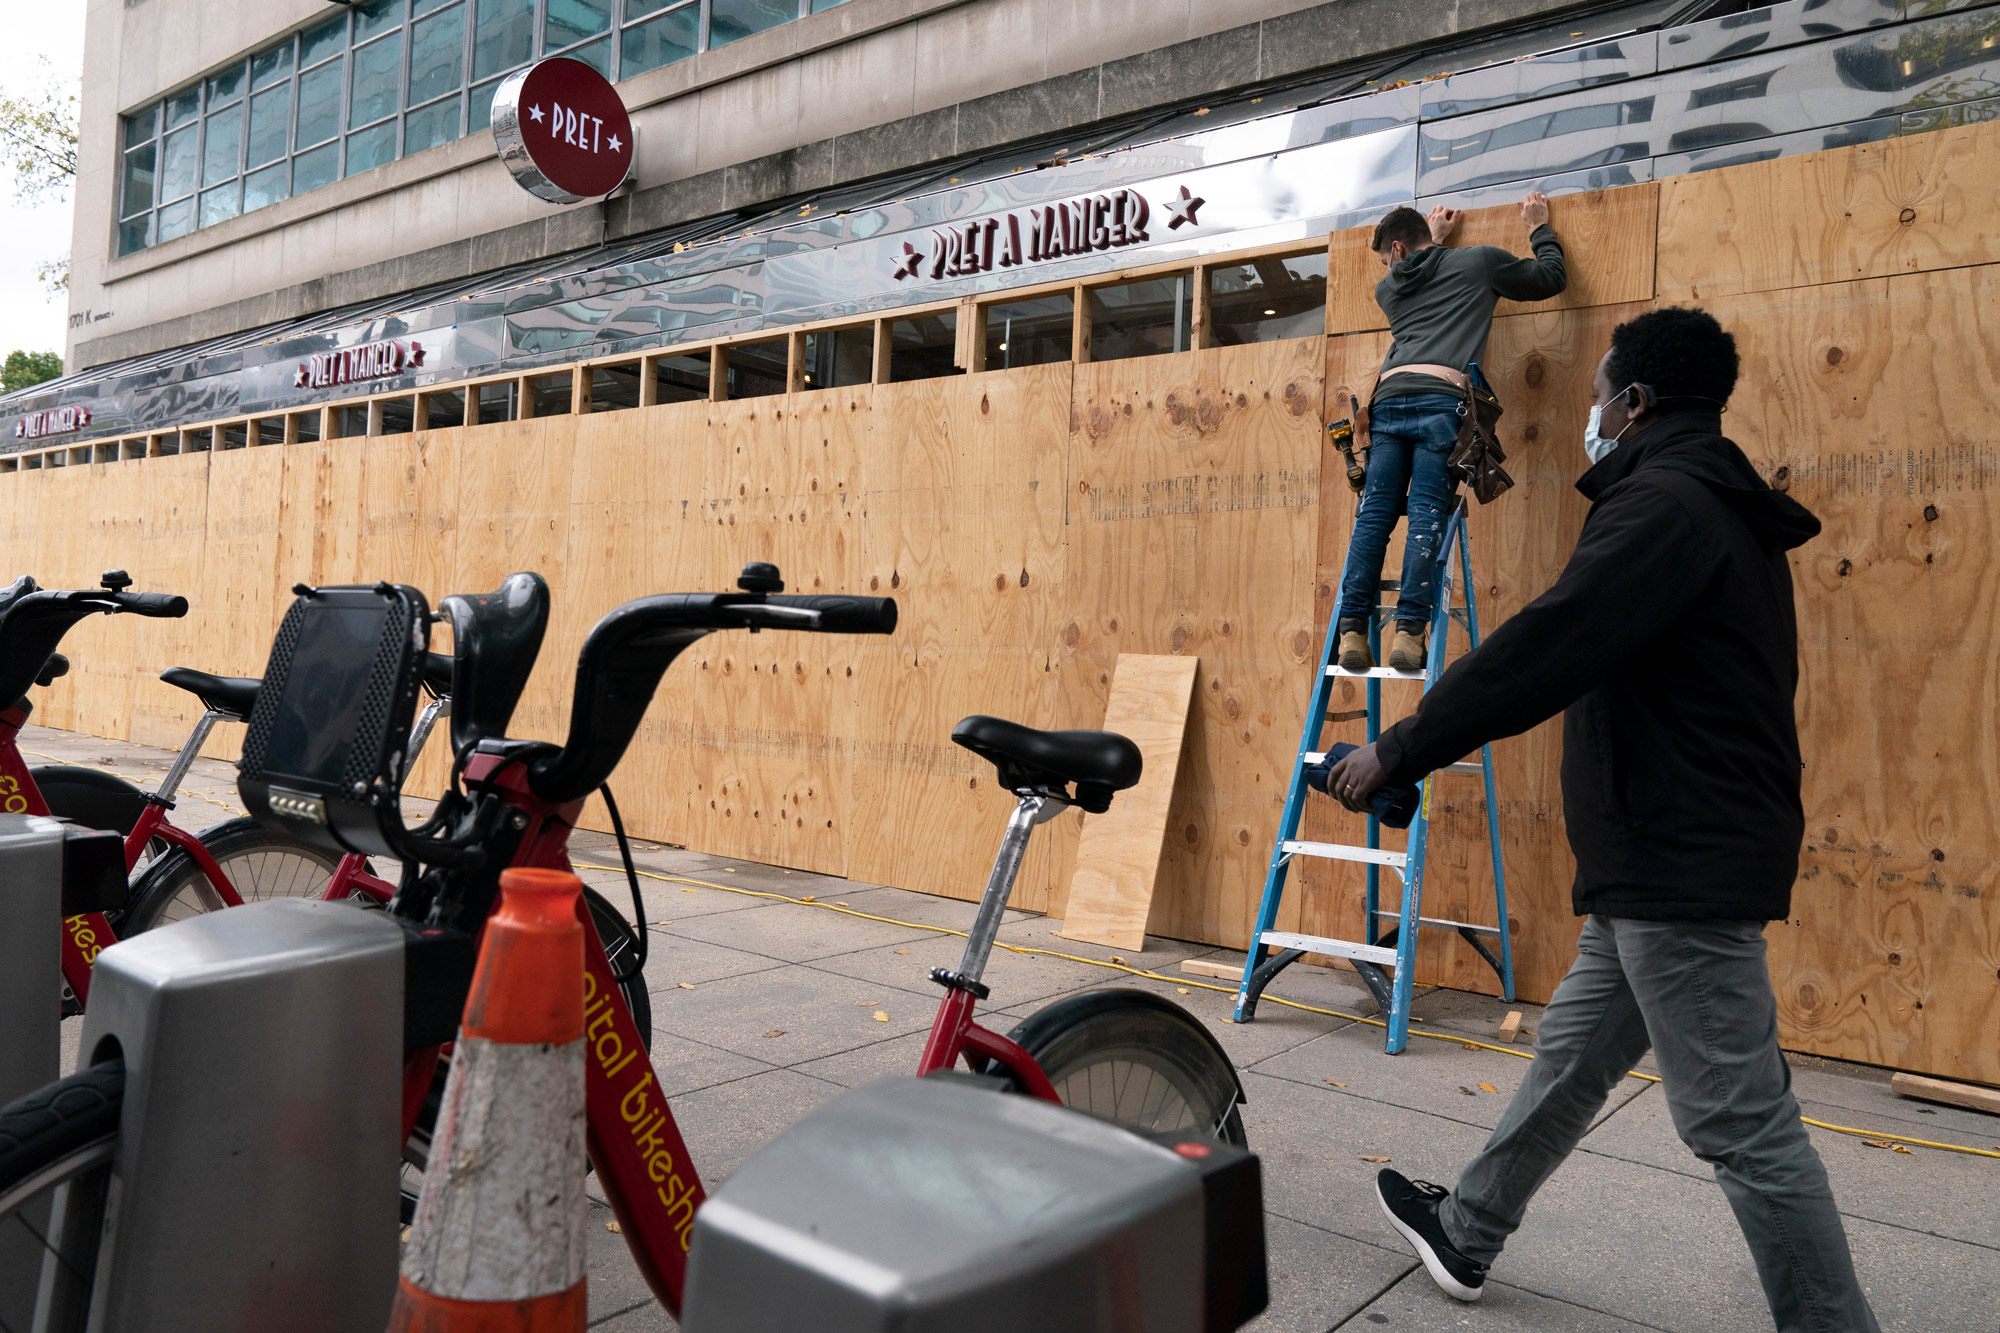 A pedestrian passes work being done to board up a Pret A Manger restaurant along K Street on October 30.